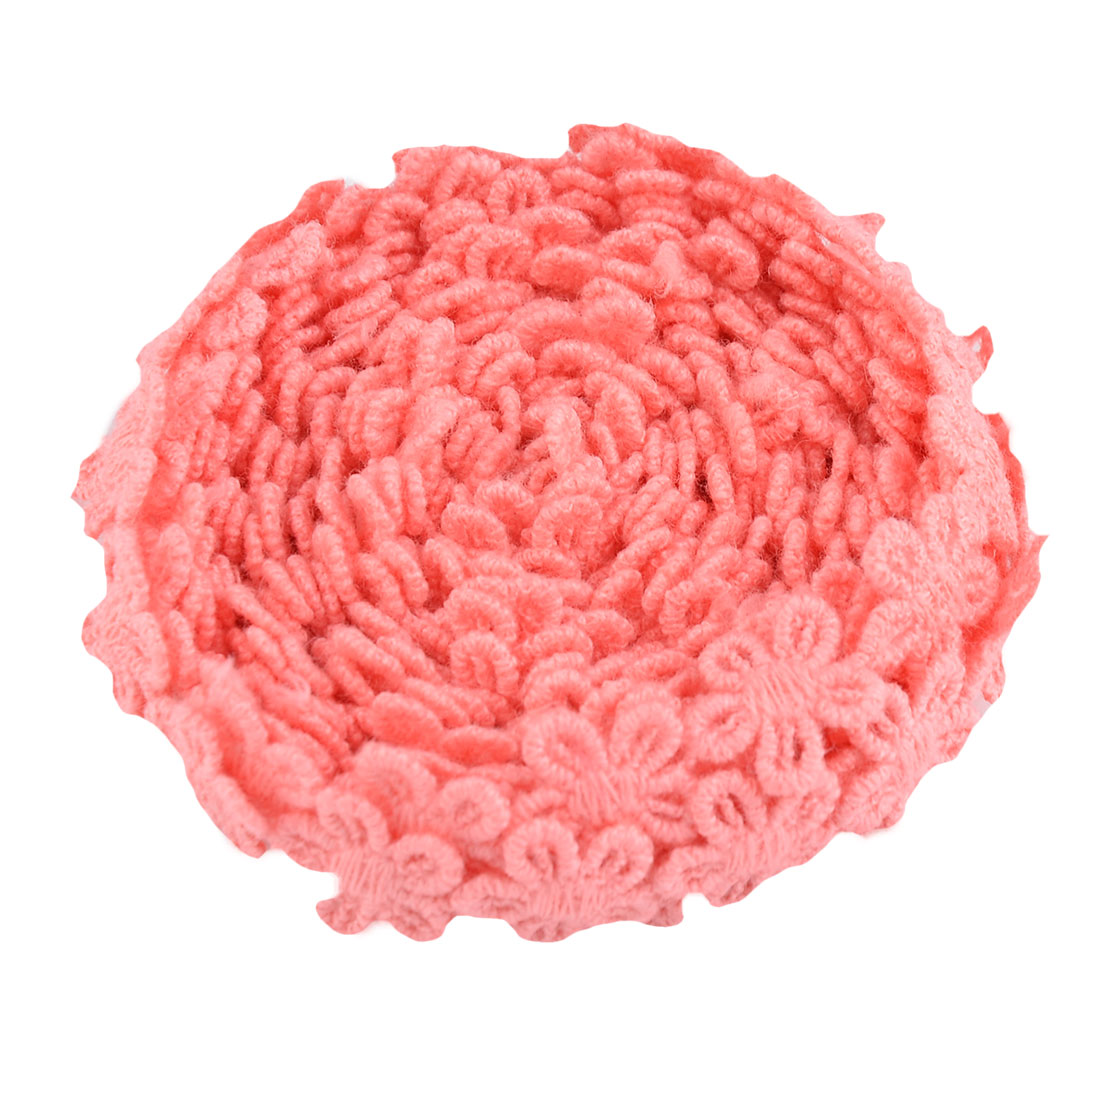 Home Cotton Blends Flower Design DIY Clothing Decorative Lace Trim Applique Coral Pink